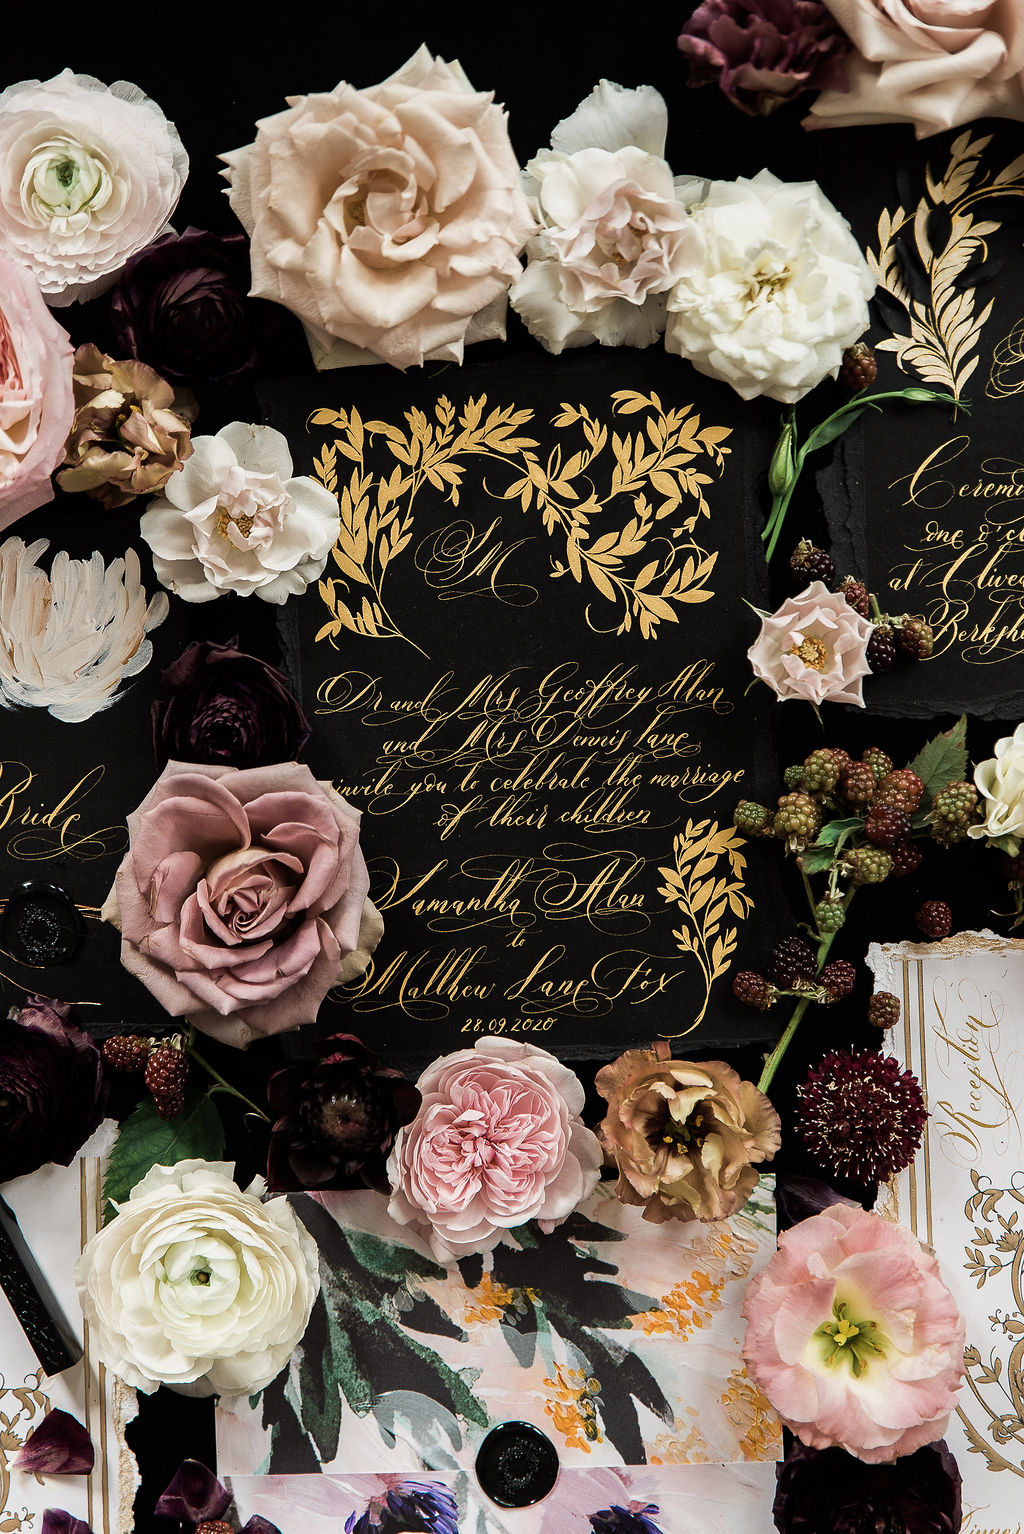 French Style moody black and gold invitations styled with flowers on a black background